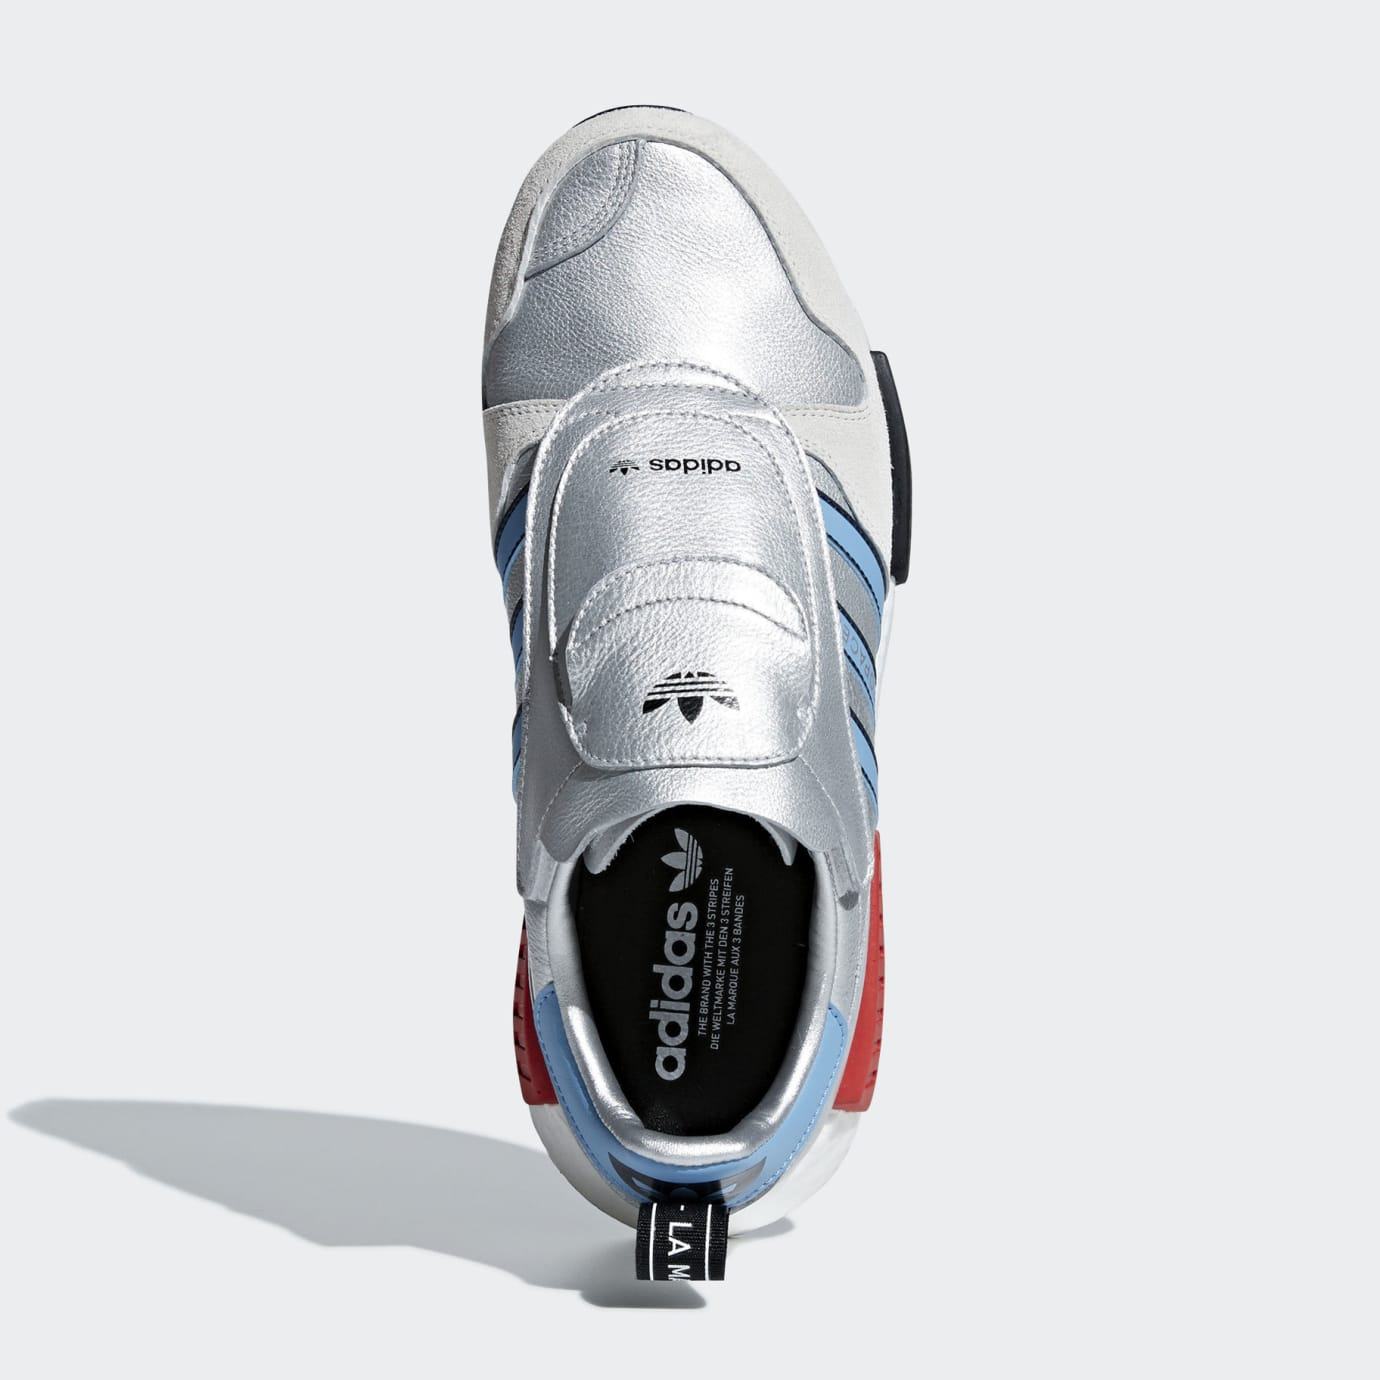 Adidas Micropacer NMD R1 Silver Release Date G26778 Top